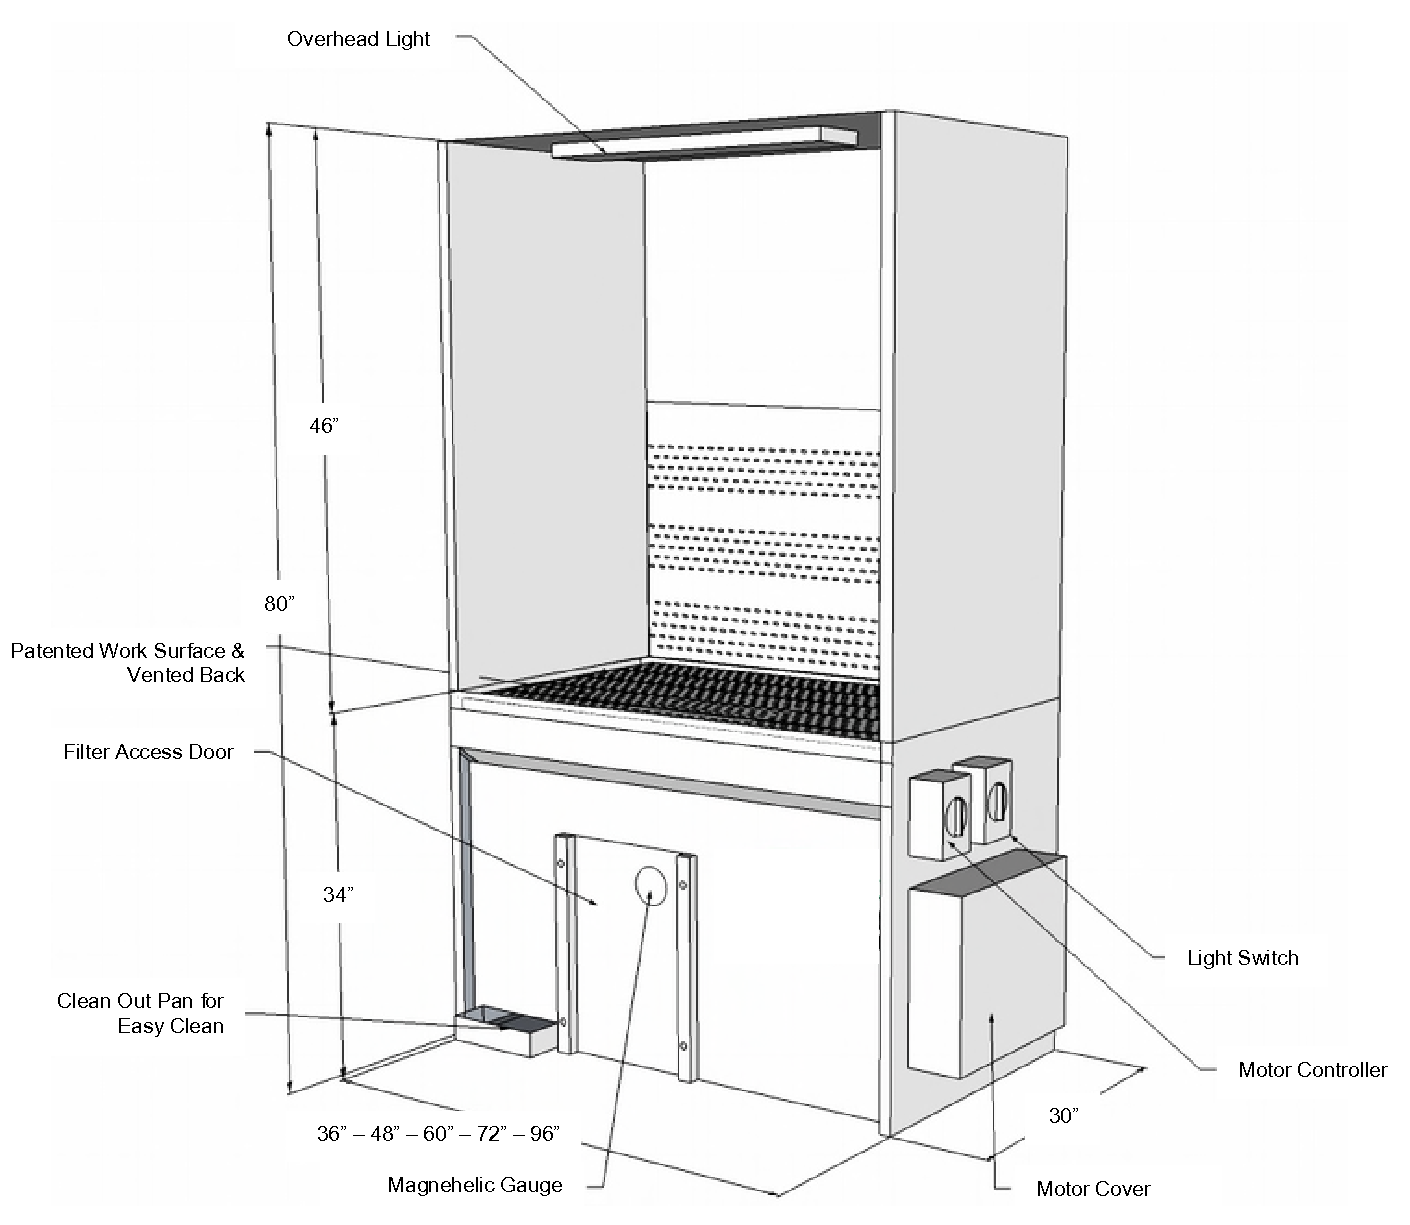 TB series vented-back downdraft booth technical drawing